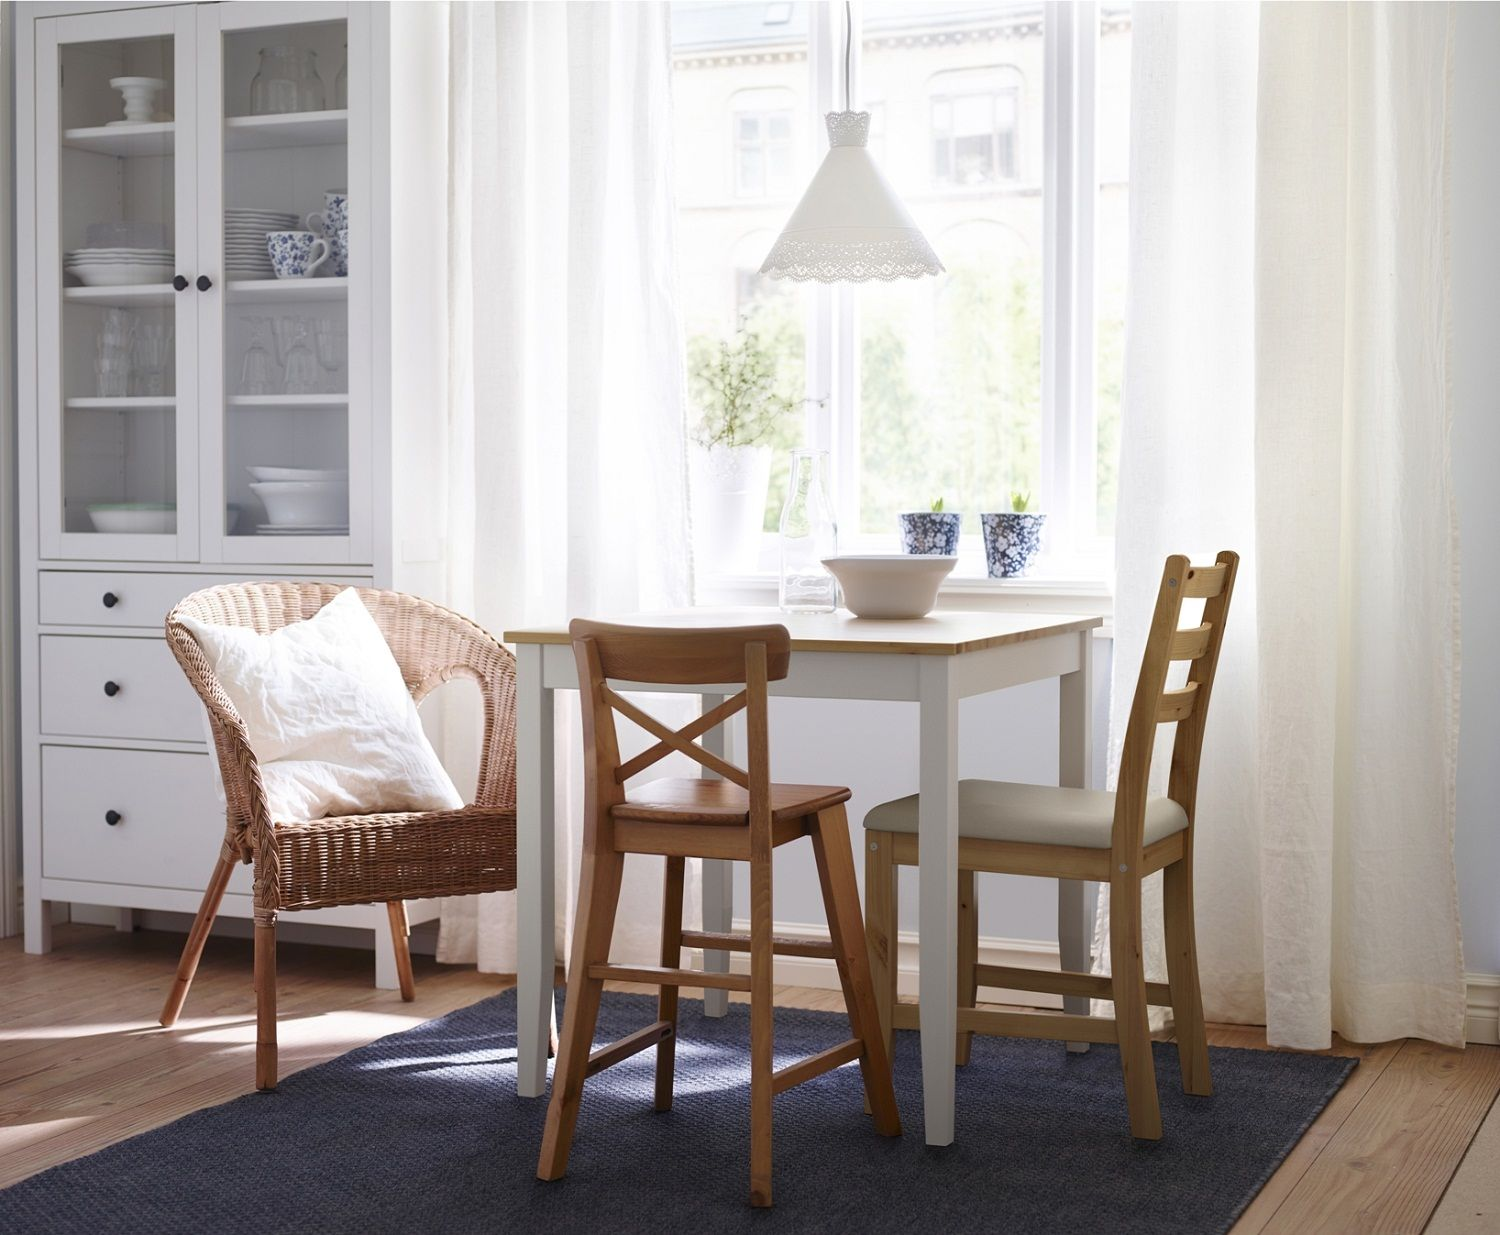 Smallrectanglebreakfastnooktablewithrattanchairbeside Delectable Small Dining Room Sets Ikea Inspiration Design